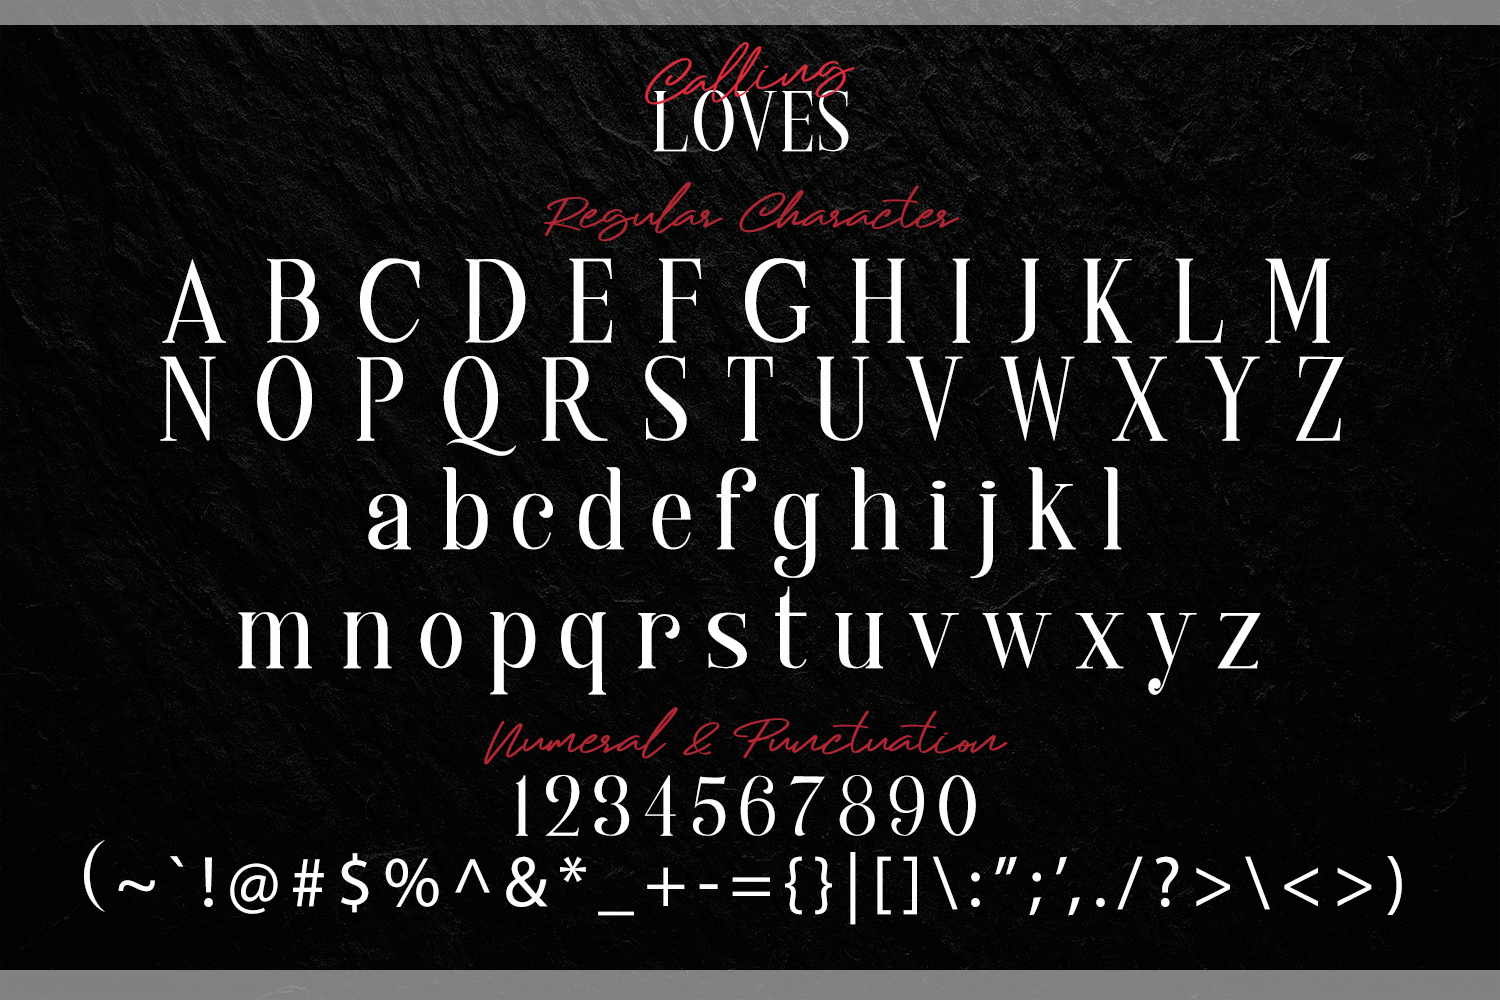 Calling Loves - Font Duo example image 7